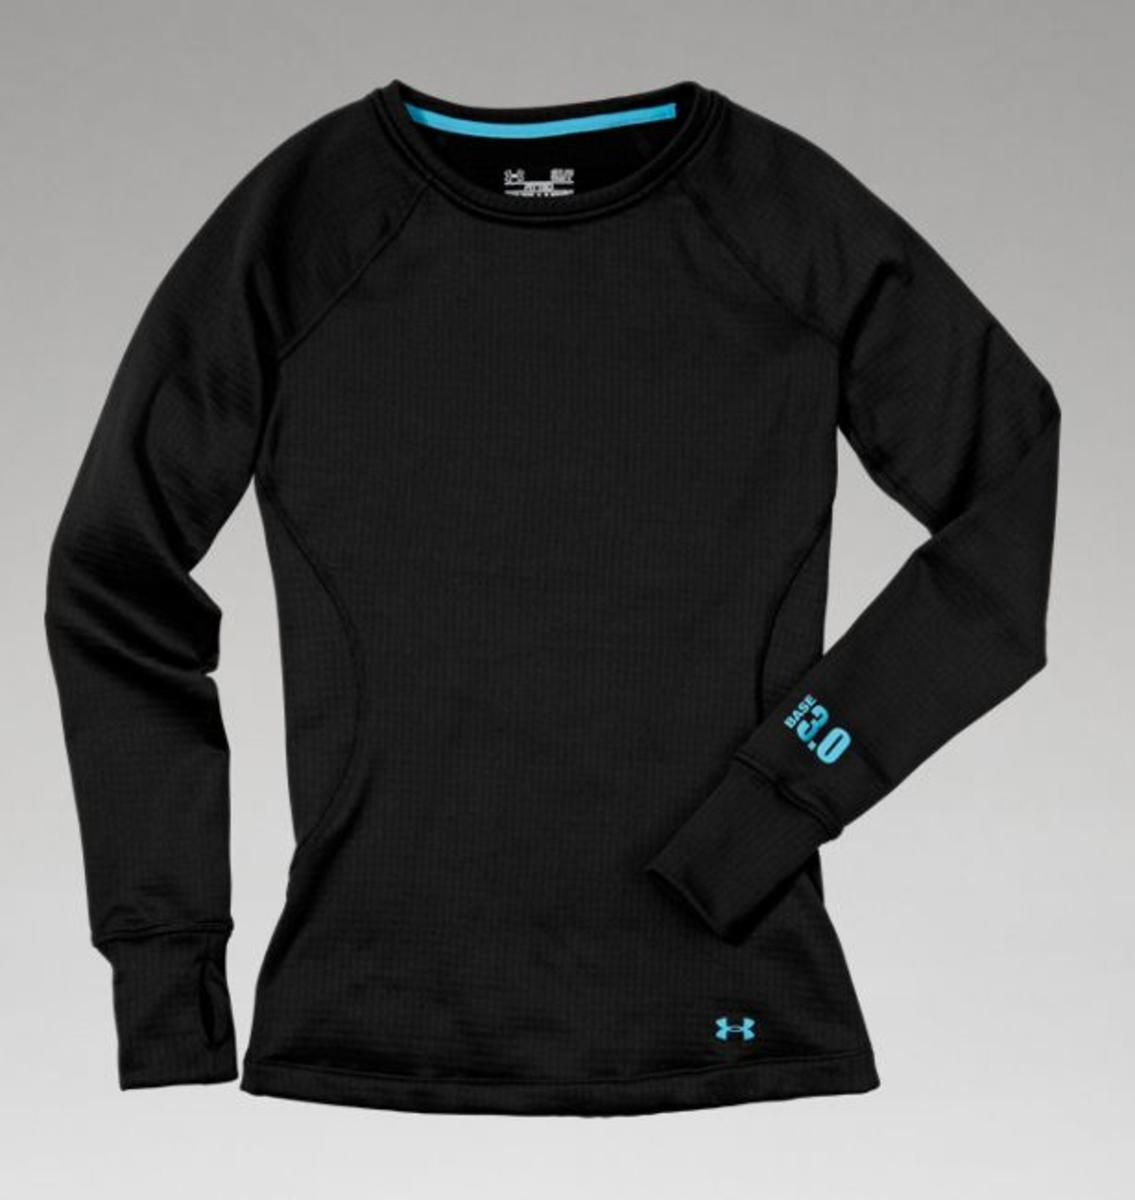 bccdda0e0cb961 Under Armour Women's UA Base 3.0 Crew Shirt - The Warming Store